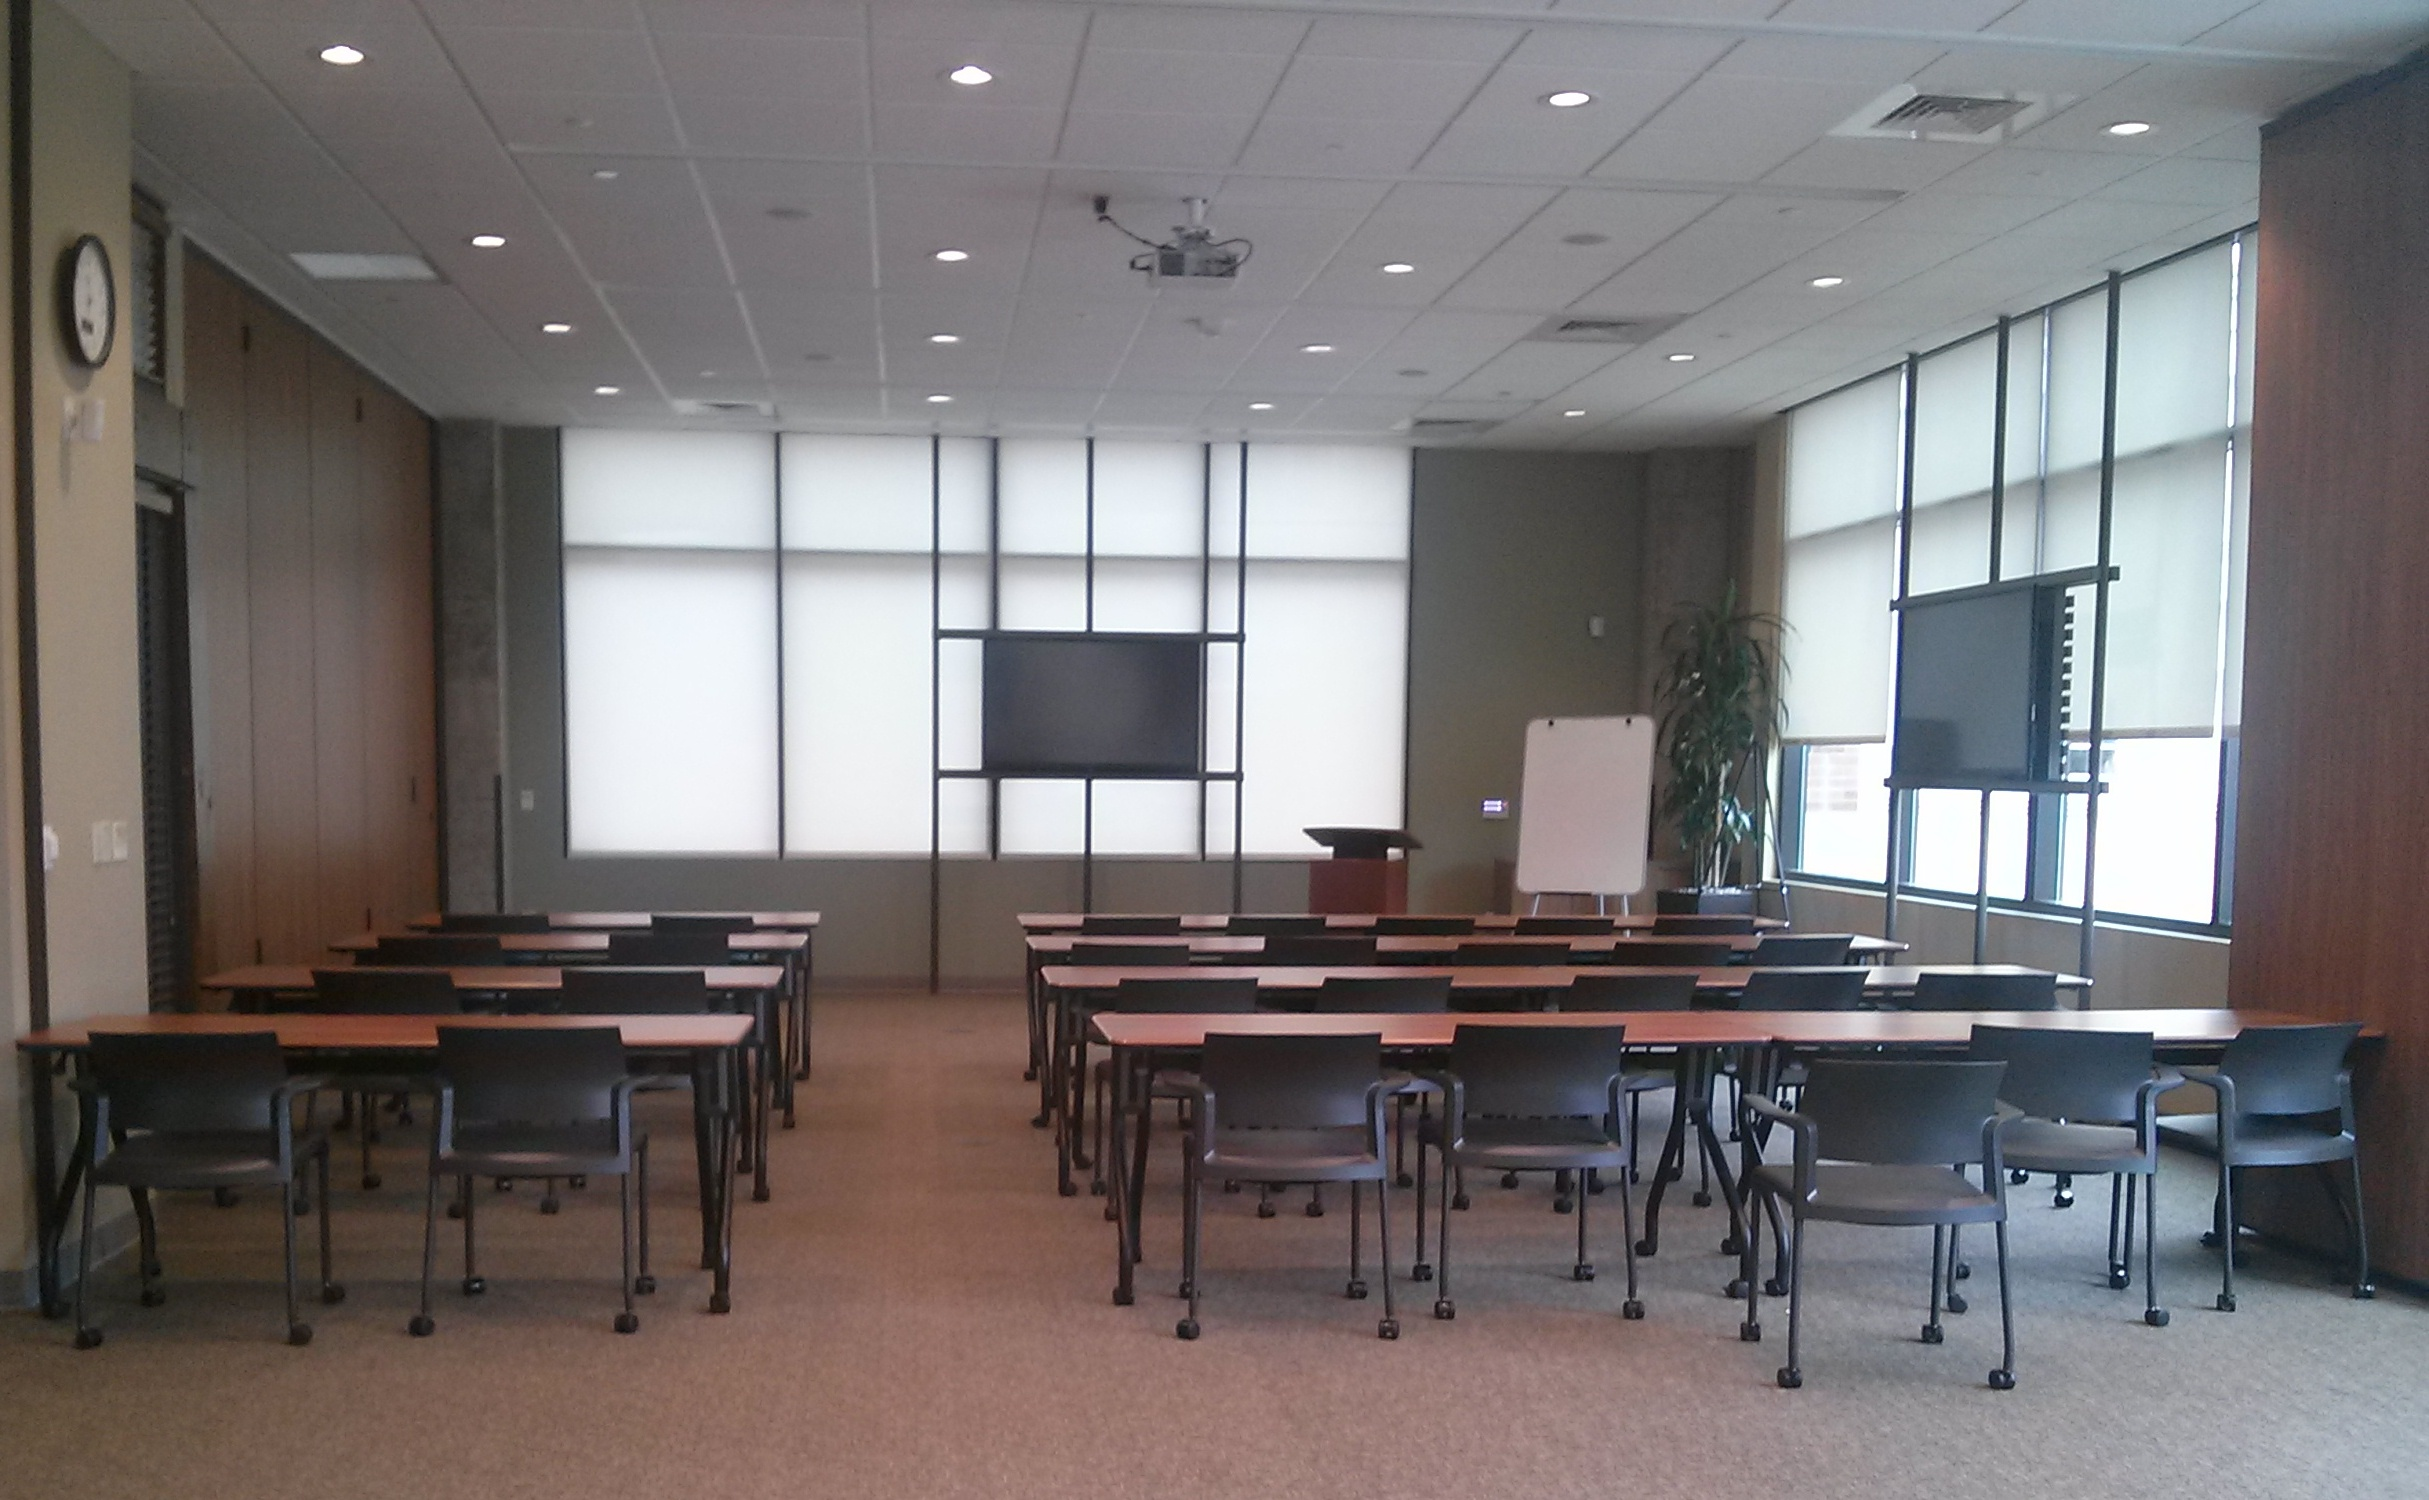 The Area Foundation's large conference room recently hosted an SA 2020 meeting for more than 100 guests. Photo by Melanie Call.